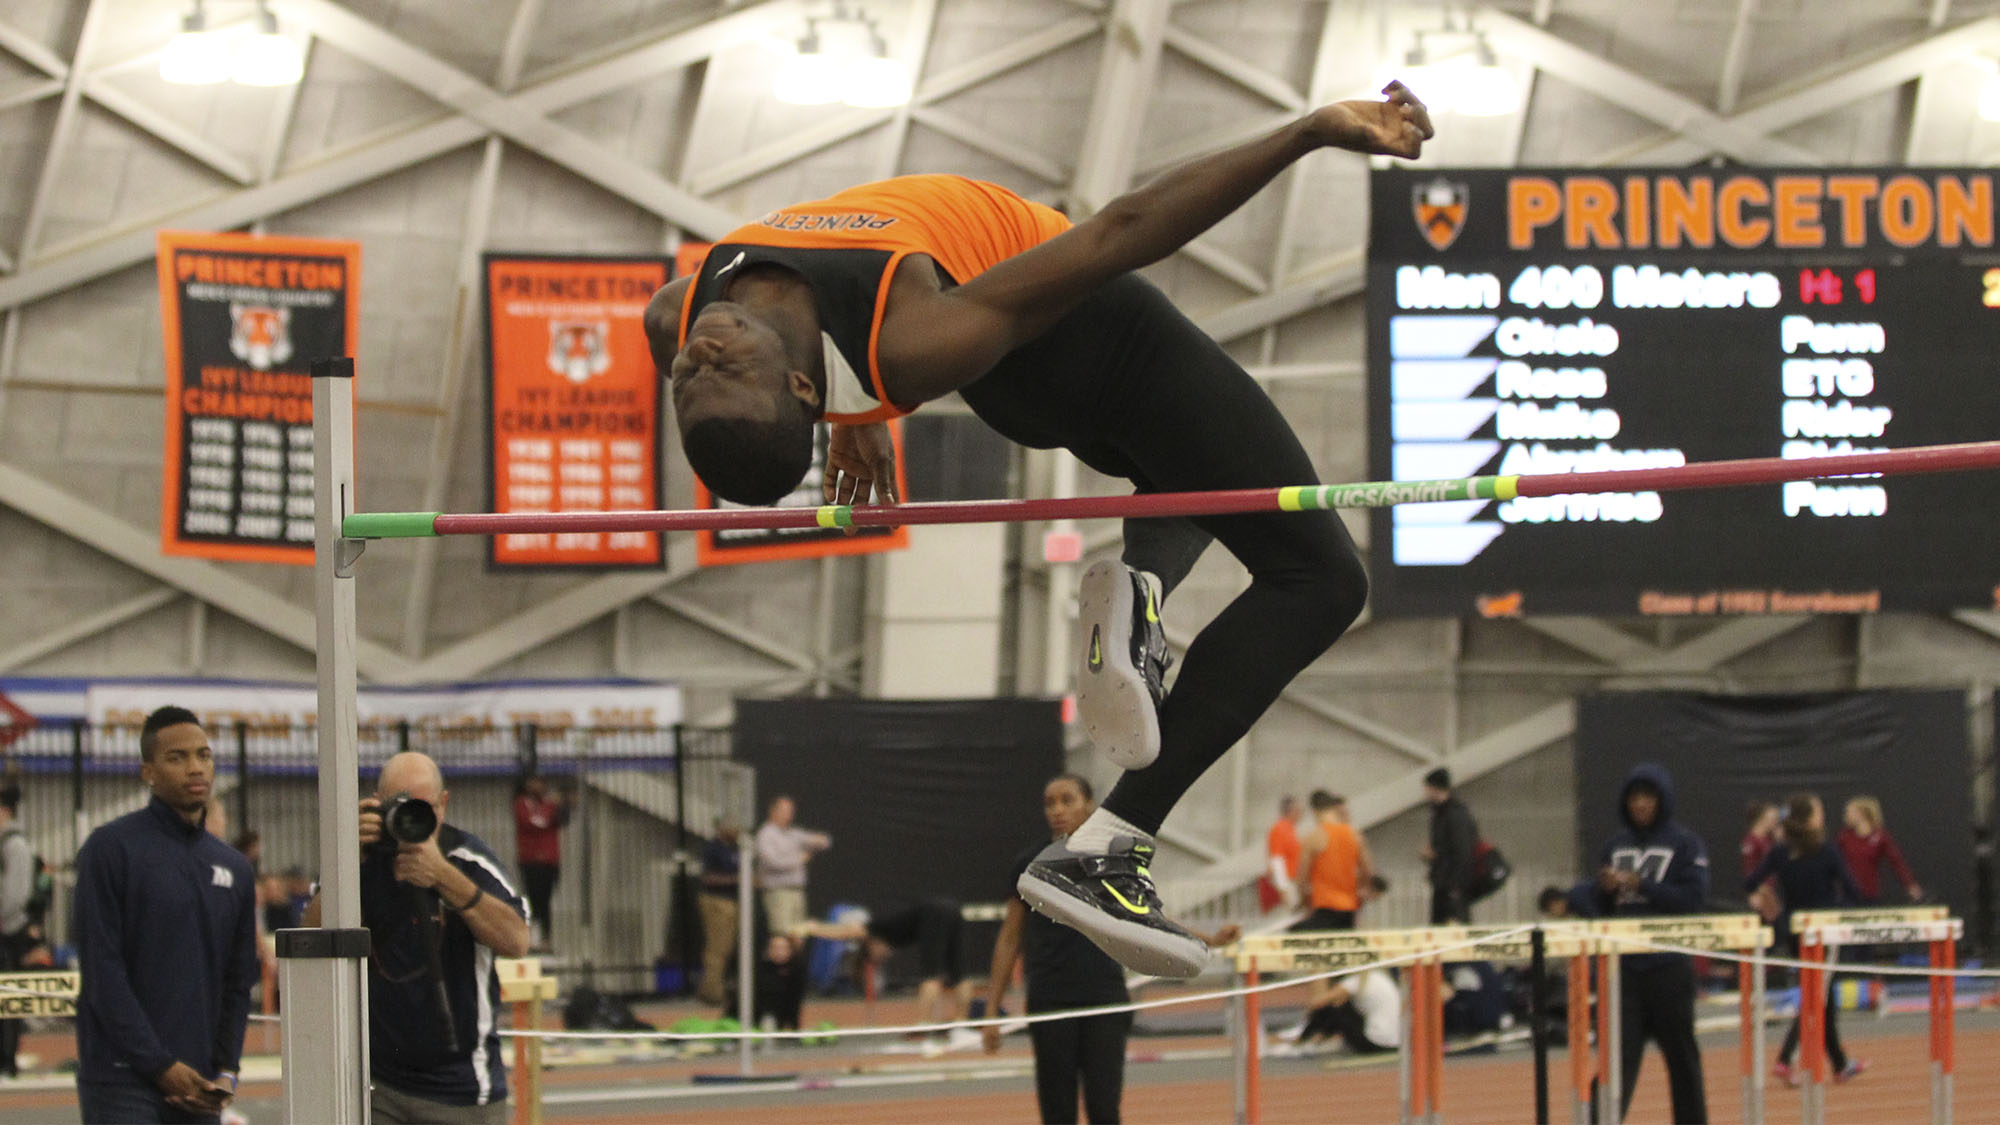 princeton track and field meet